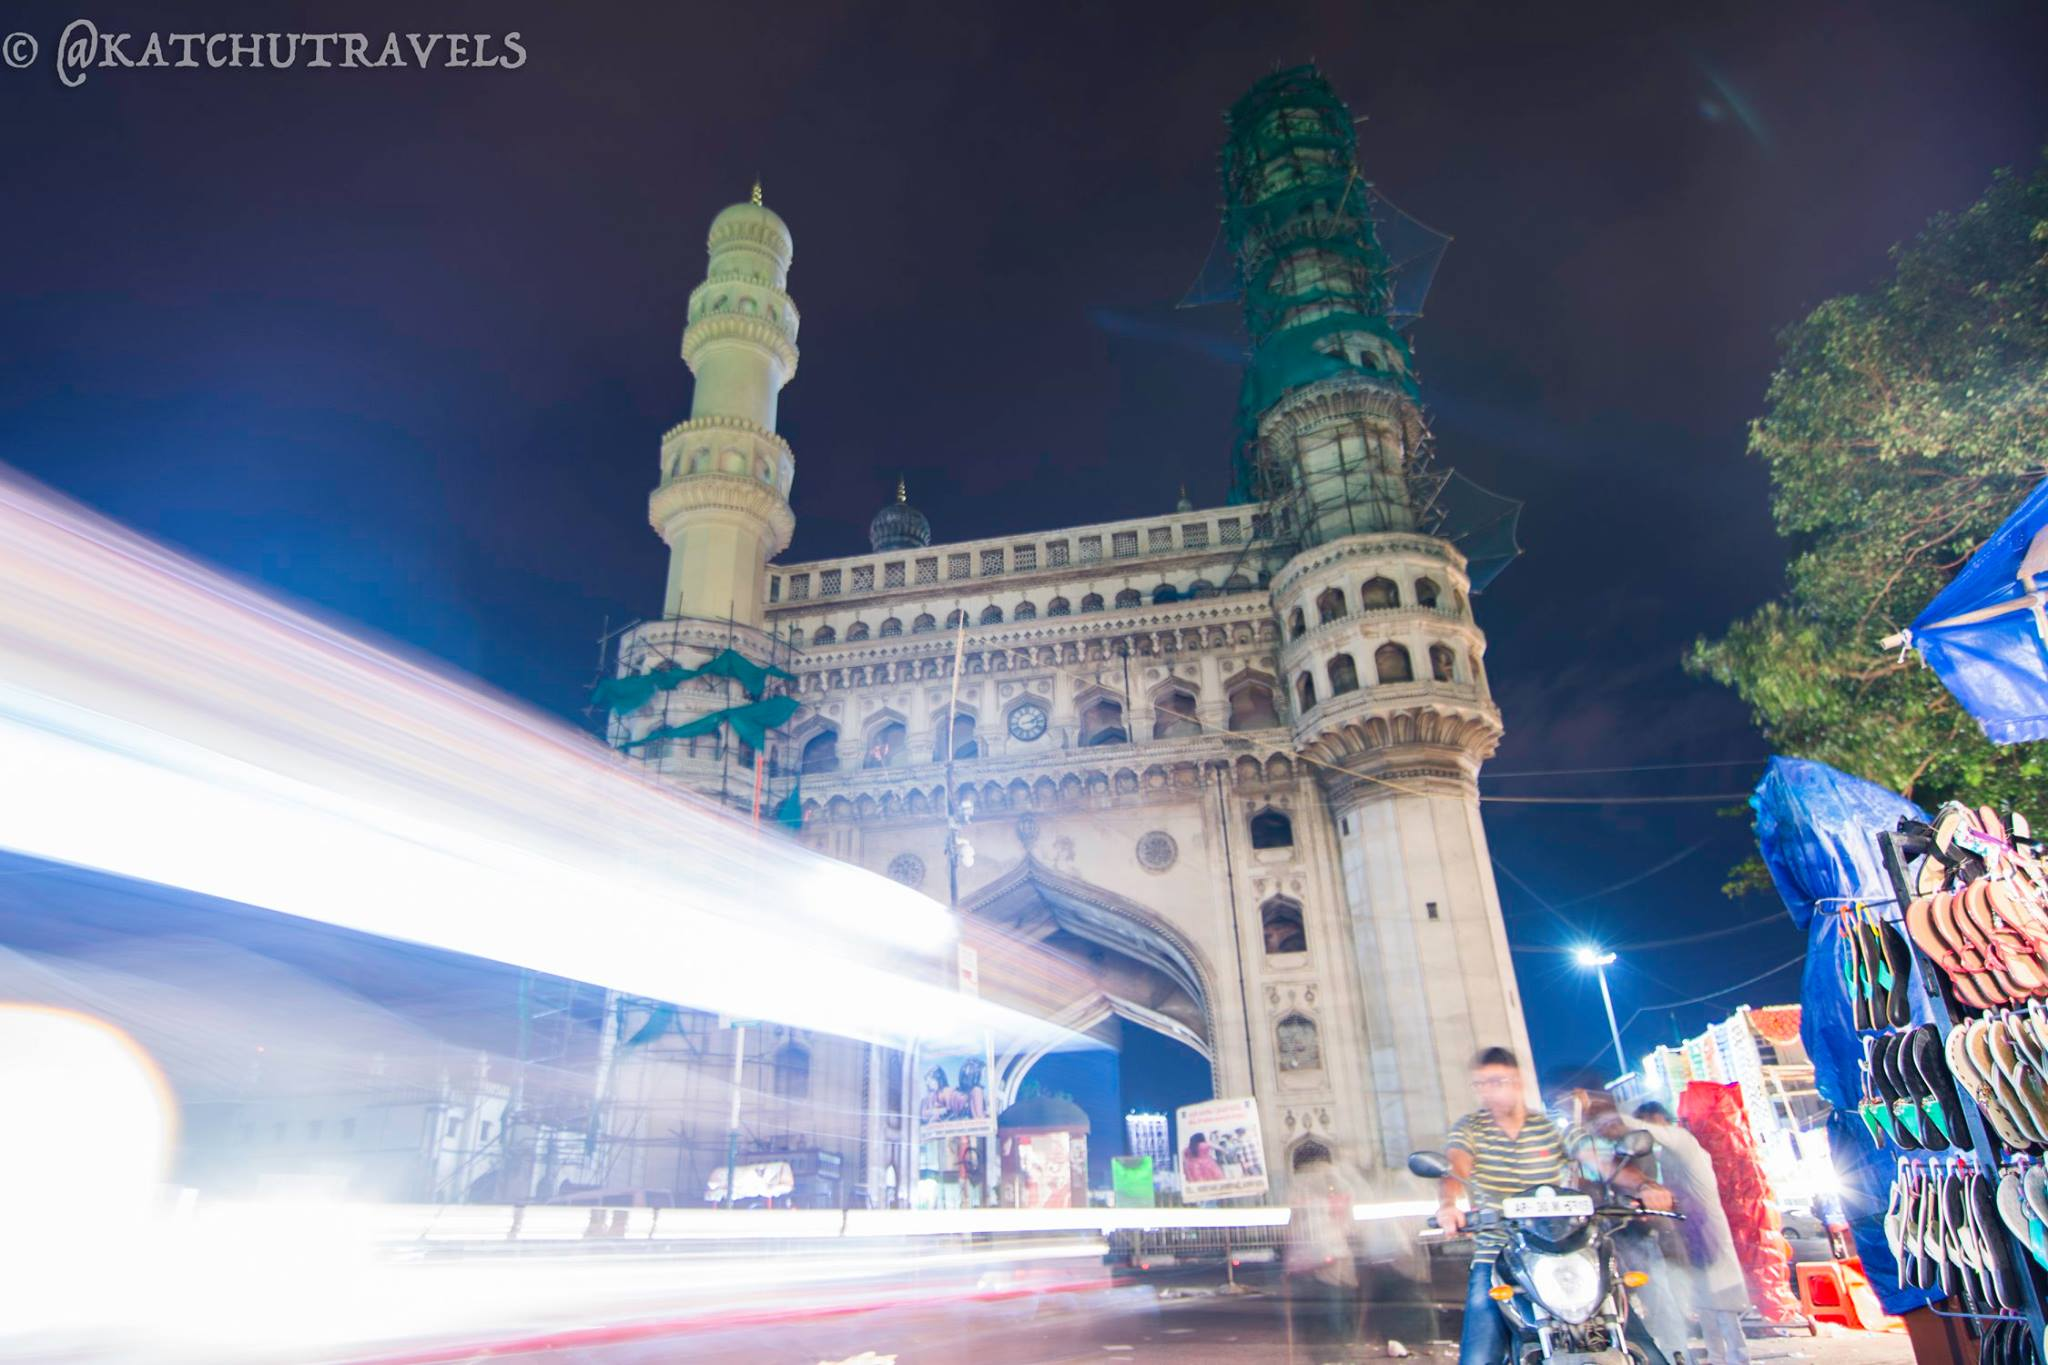 UFO Speeding at the Charminar?